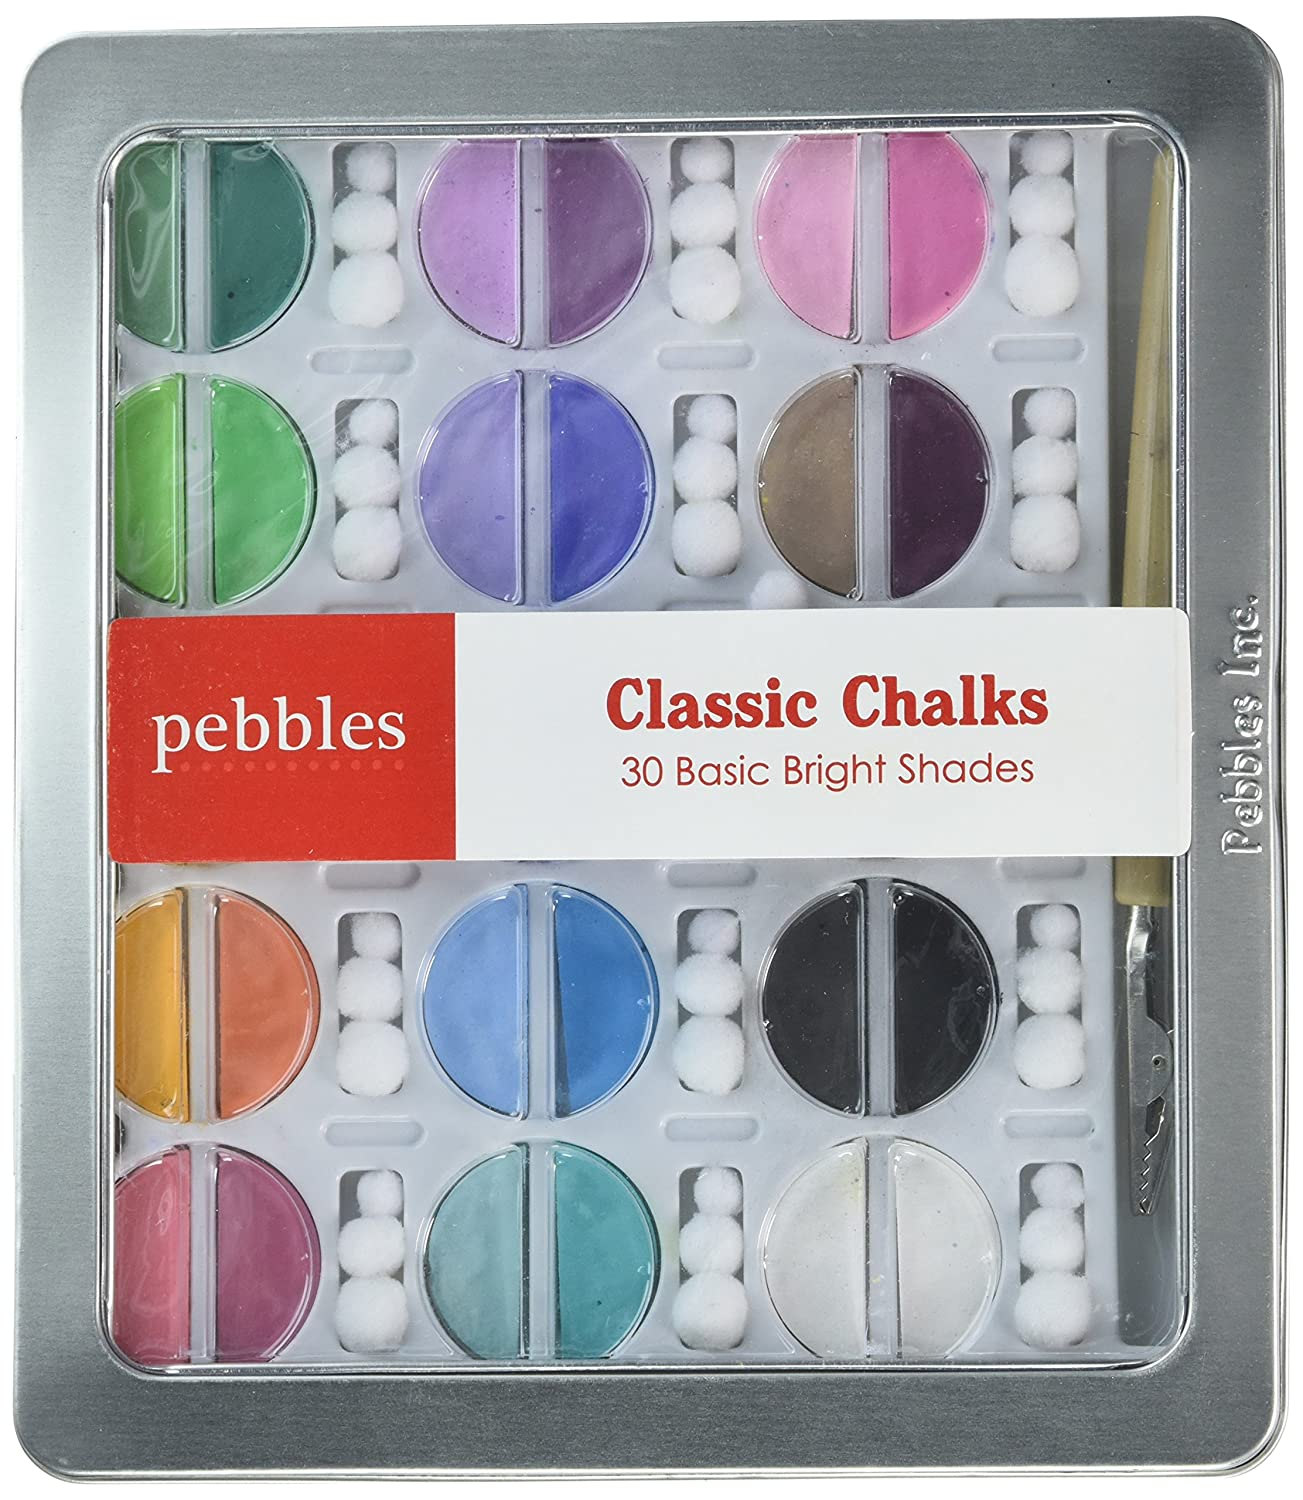   Basic Brights Classic Chalk Set by Pebbles Inc In Network IKCHLK-42001 and reusable pom-poms Notions Includes 30 chalks in various colors applicator tool